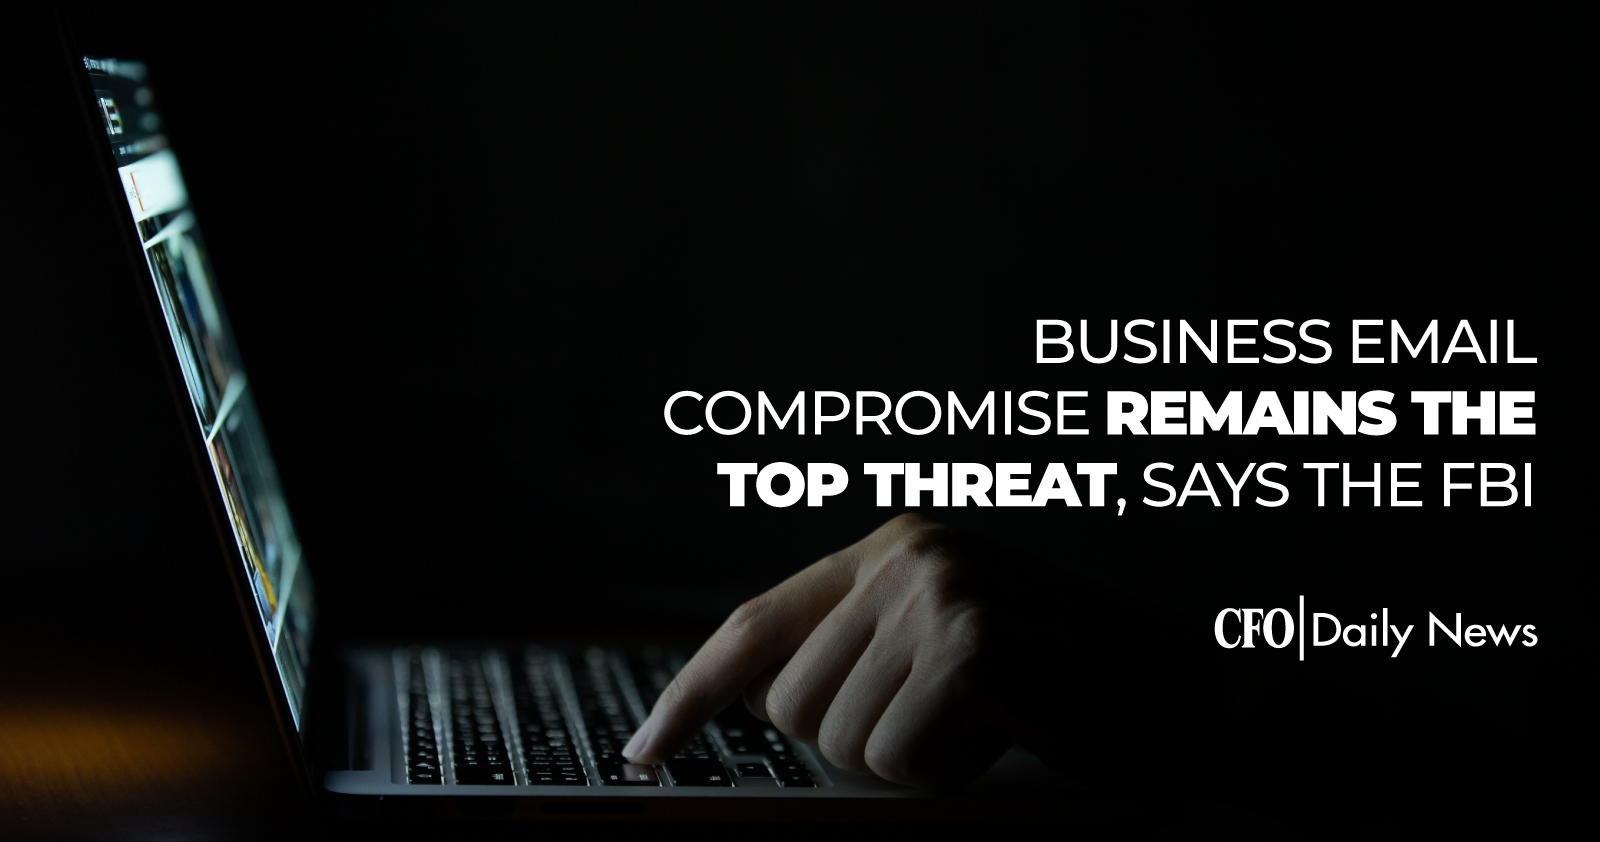 Business Email Compromise Remains The Top Threat Says The FBI